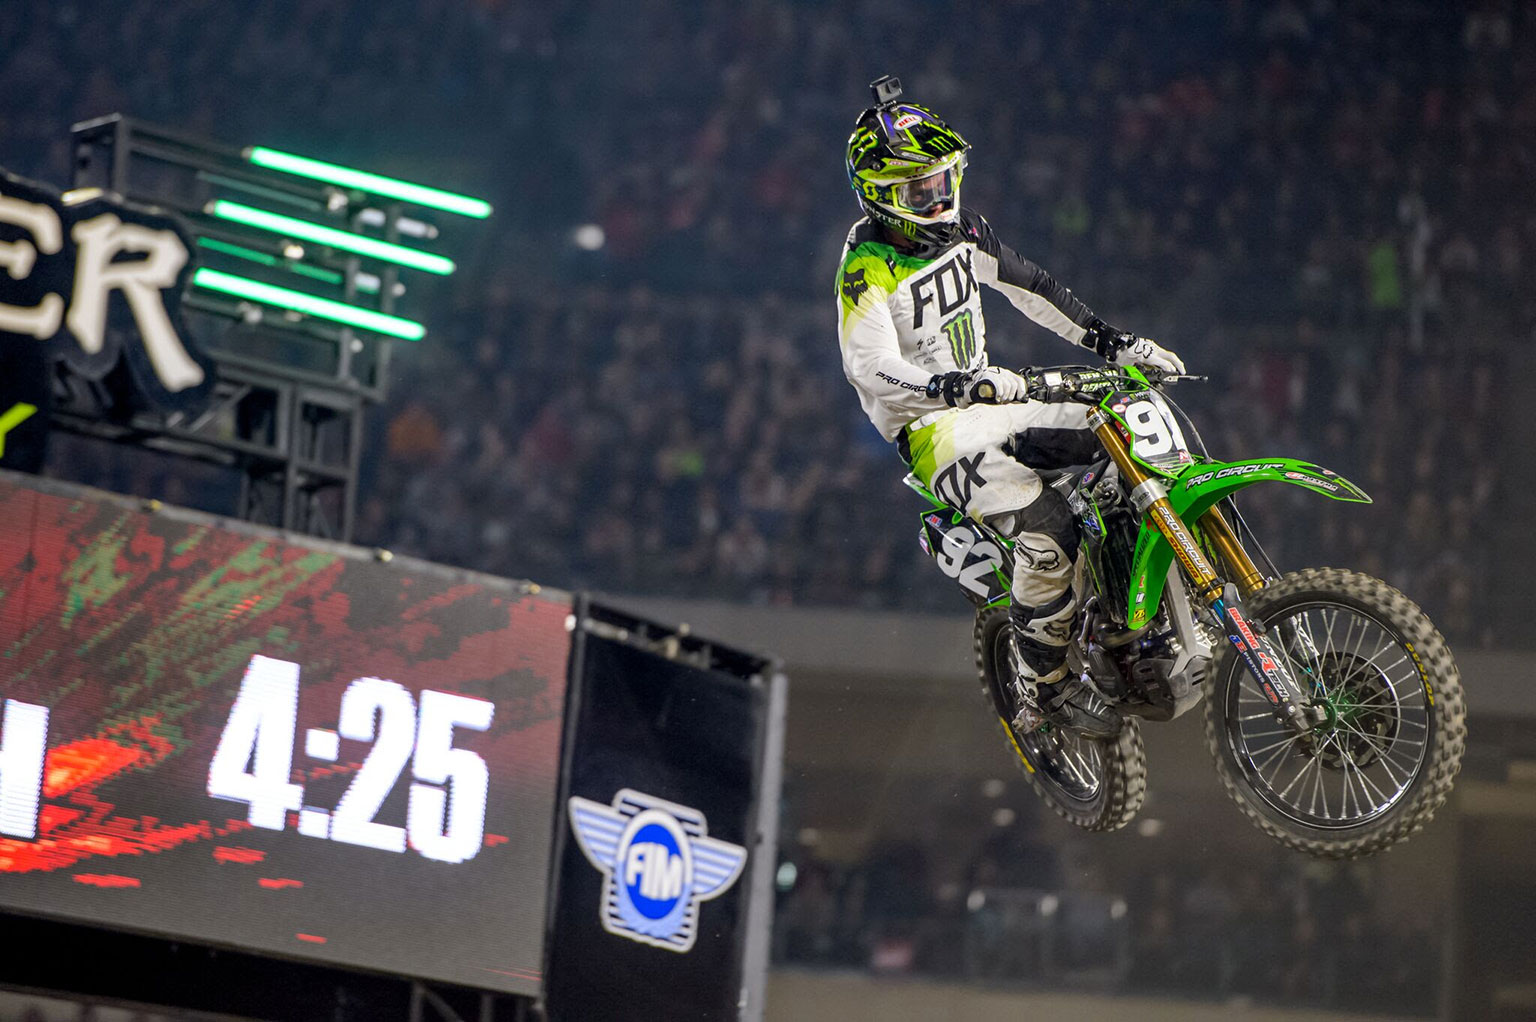 Amam Cianciarulo hopes for another podium at Houston